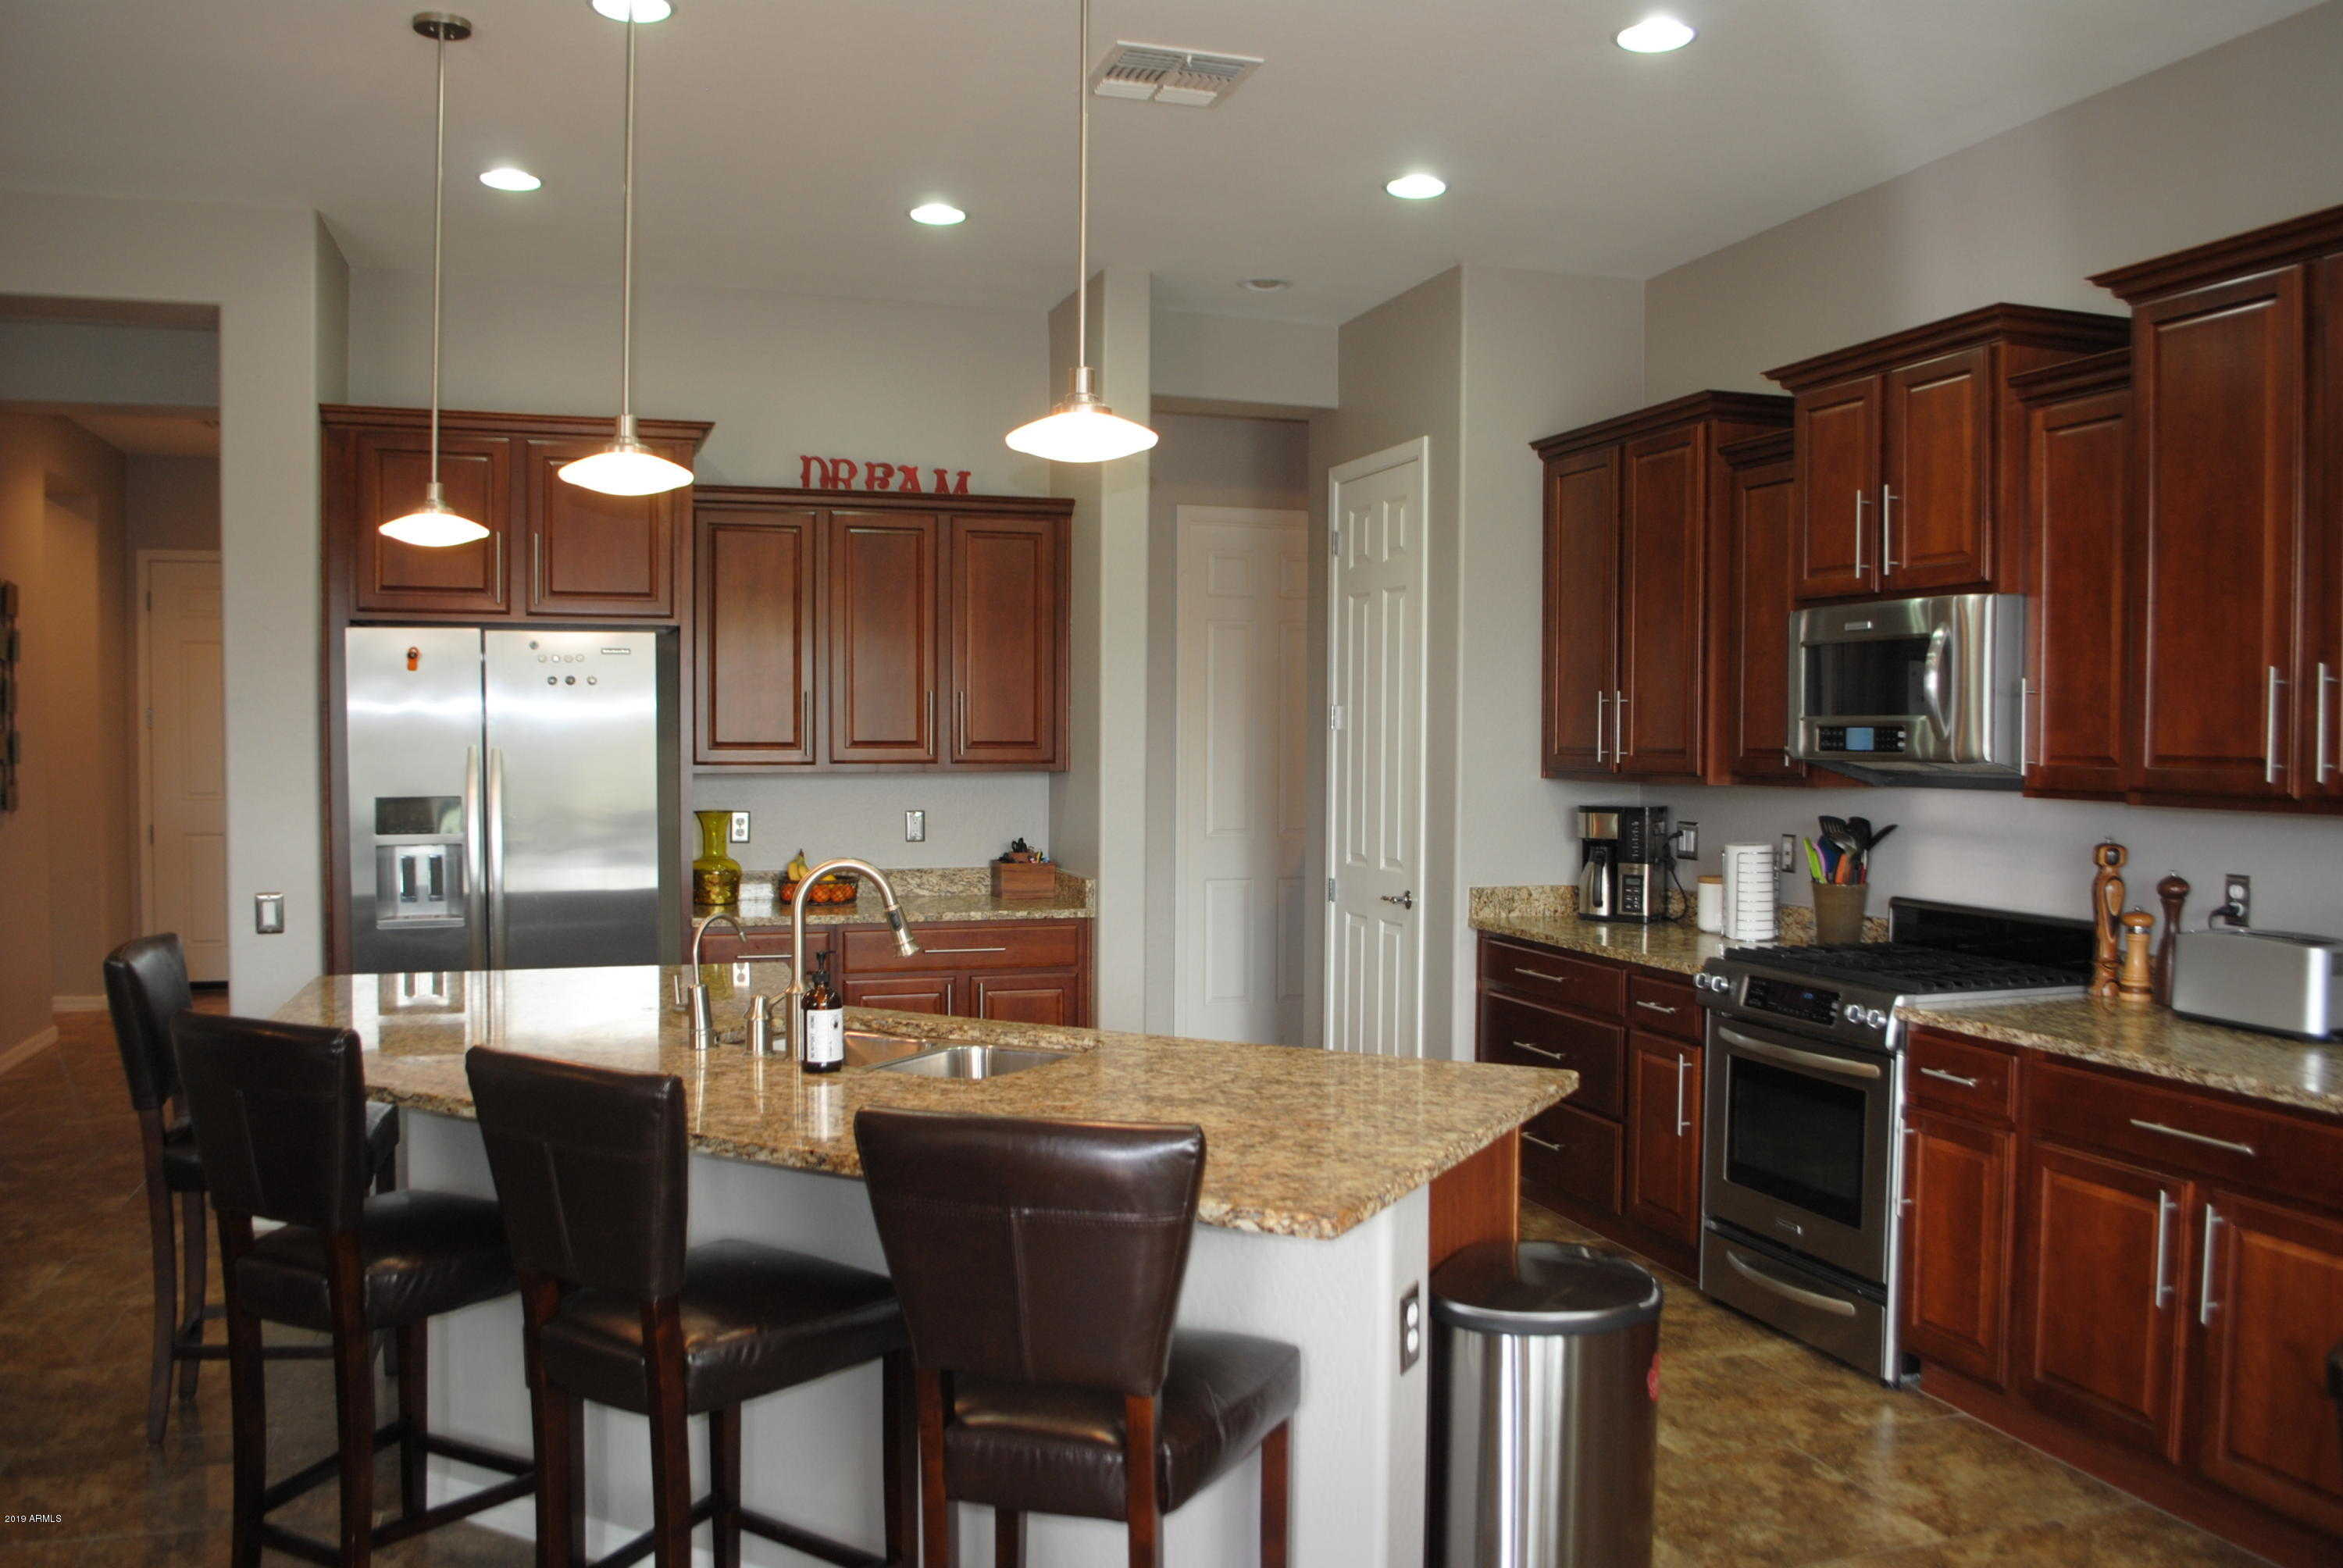 $2,650 - 3Br/2Ba - Home for Sale in Lone Mountain, Cave Creek